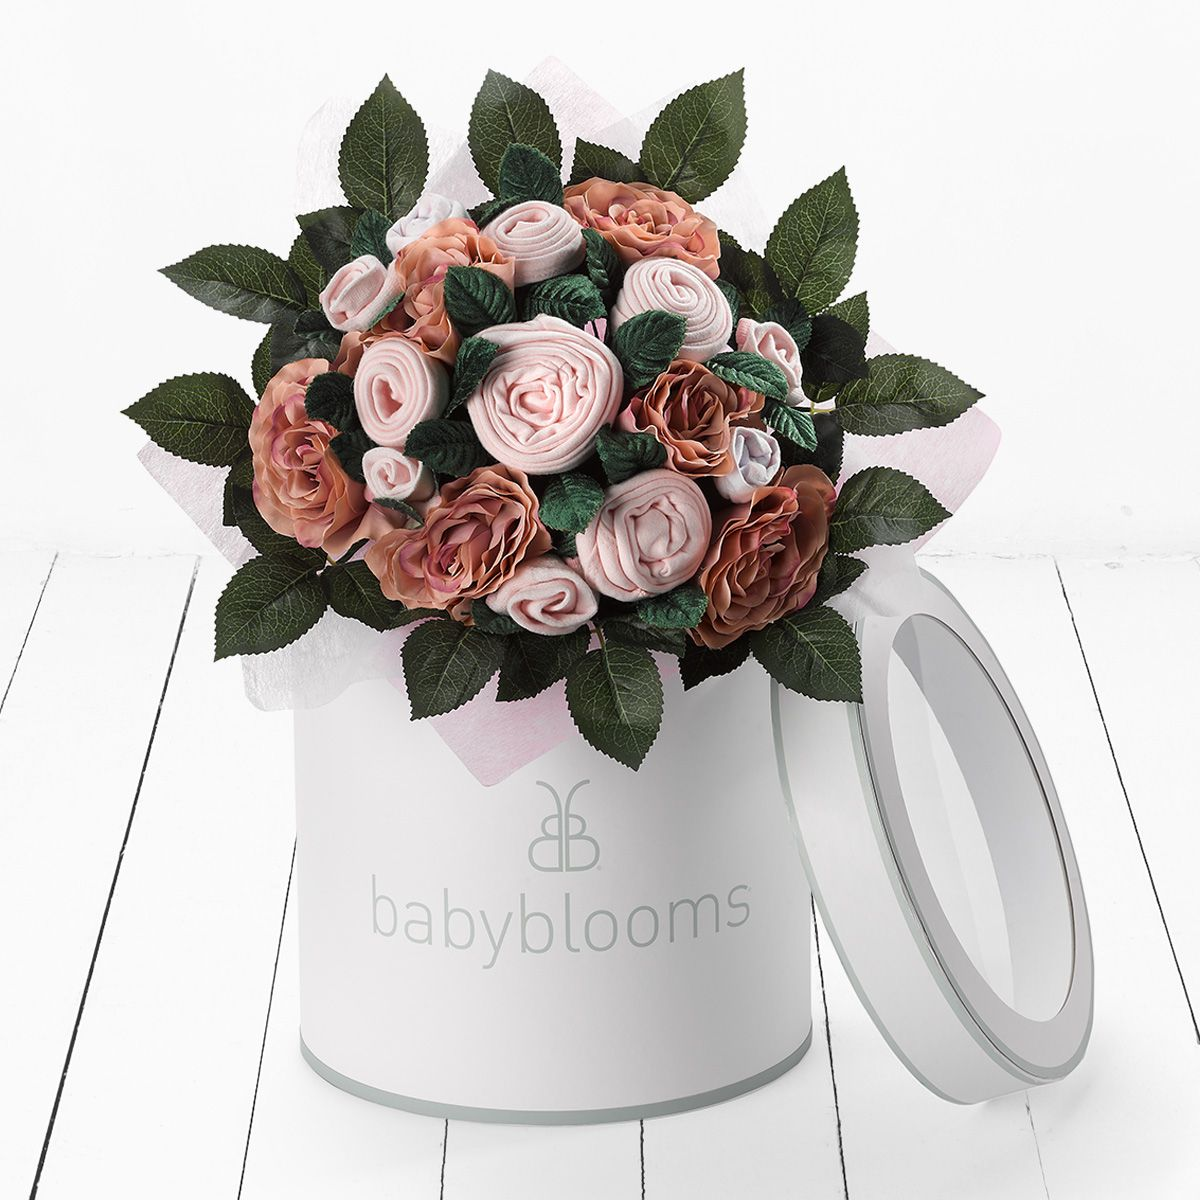 Luxury Rose Bouquet Pink Baby Clothes Bouquets Babyblooms